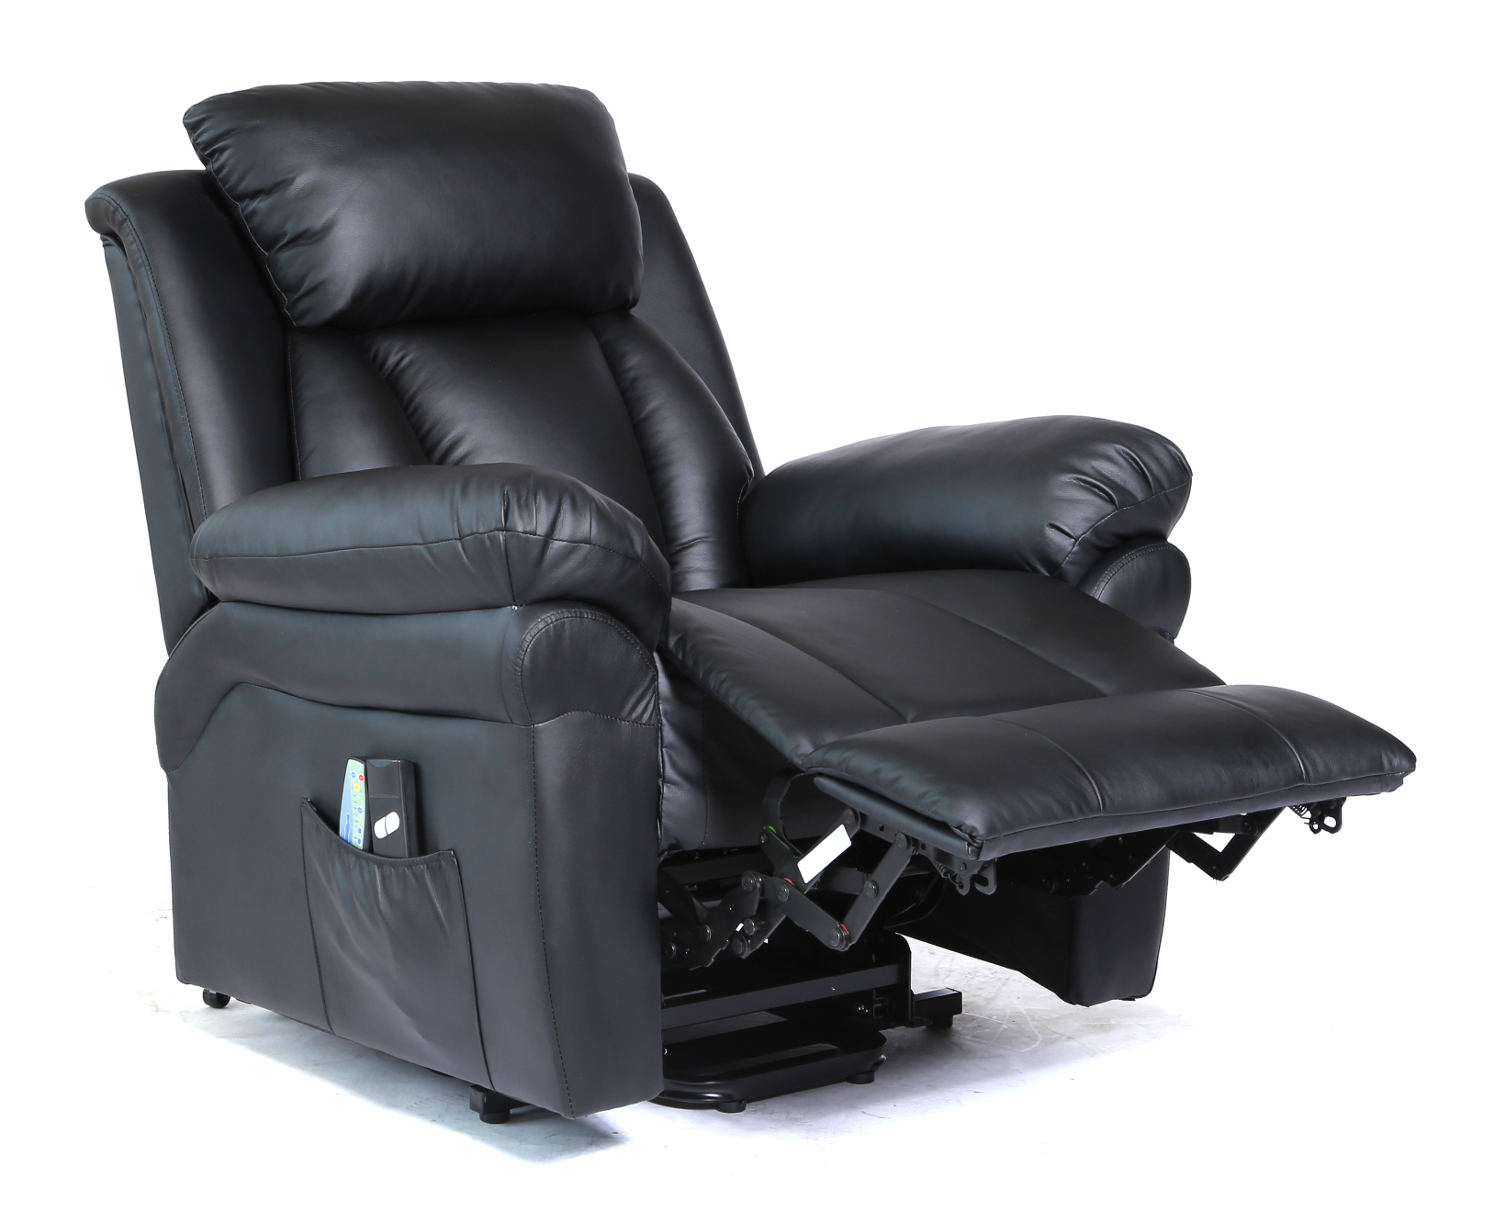 10 In 1 Massage Recliner Swivel Chair Amp Power Lift